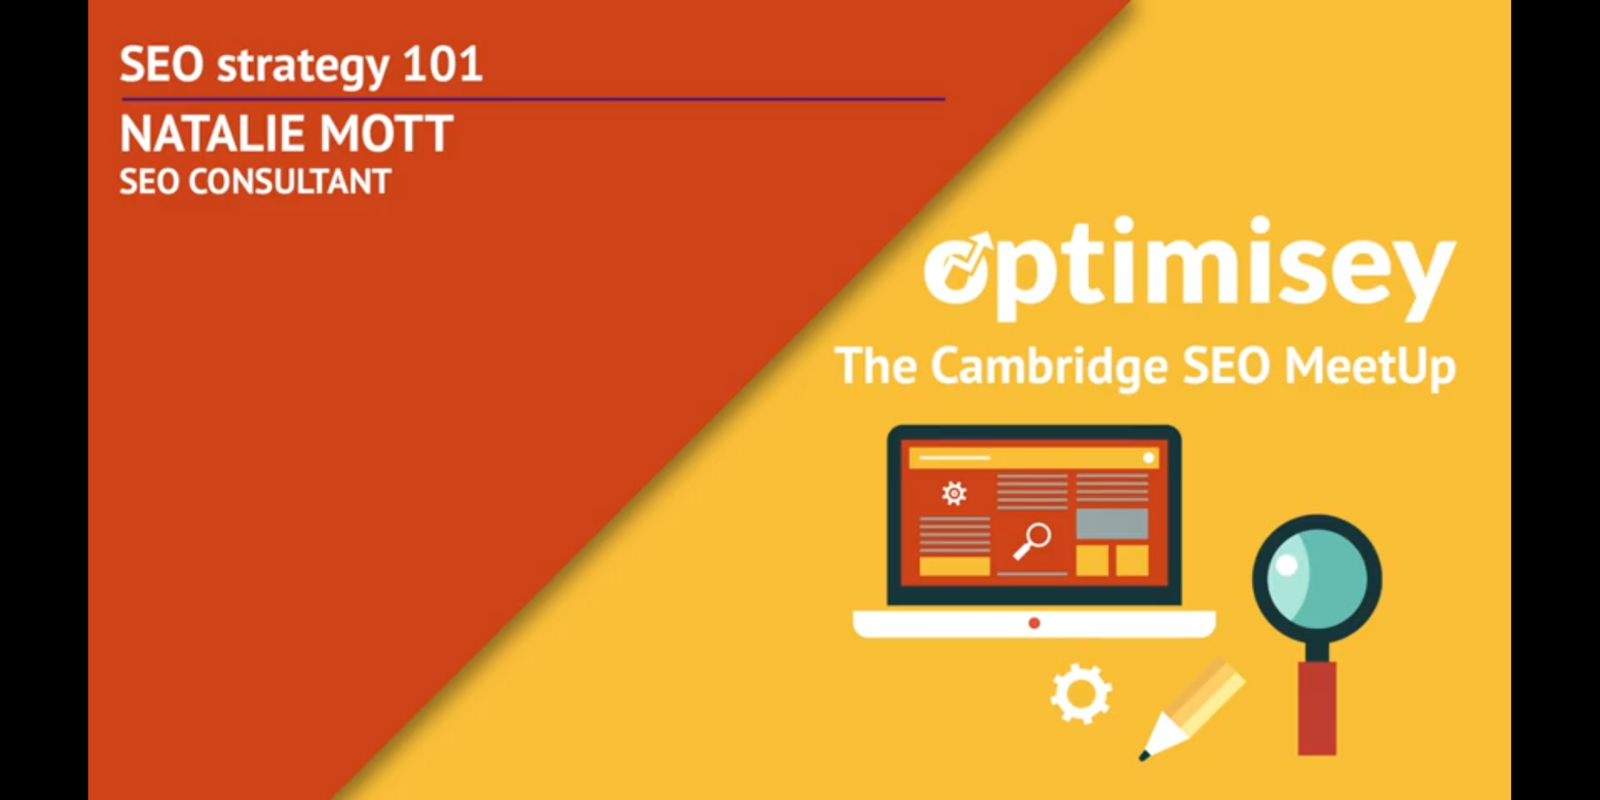 Natalie Mott's talk at the Optimisey SEO event - about SEO strategy